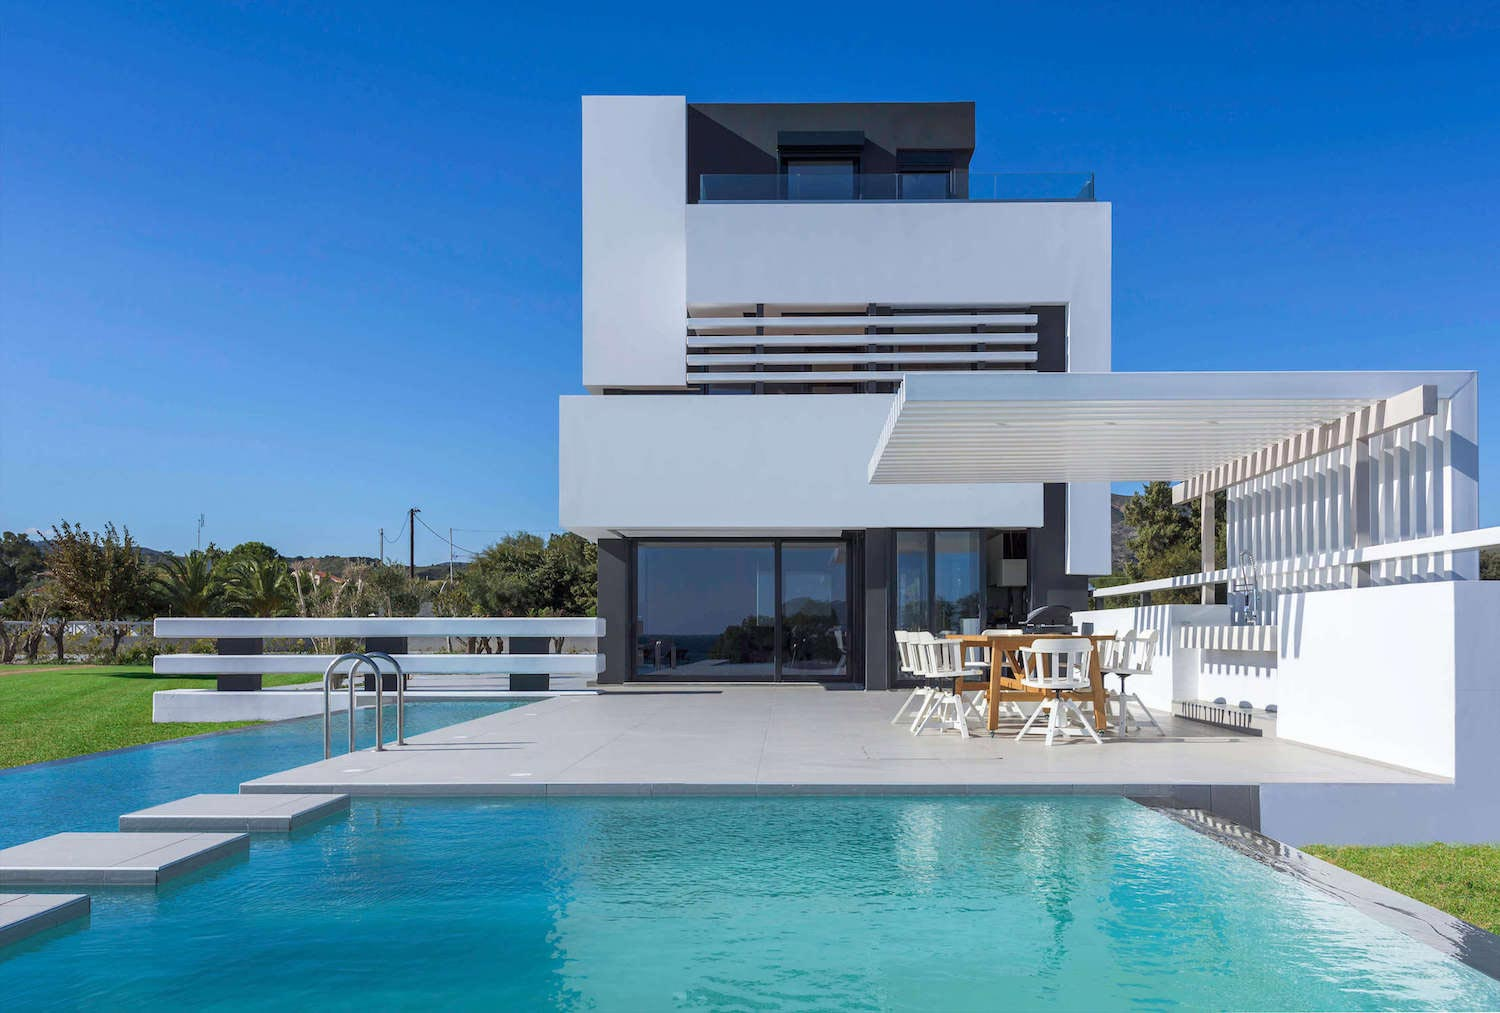 Modern albatross villa on the greek island of rhodos by for Home building architecture